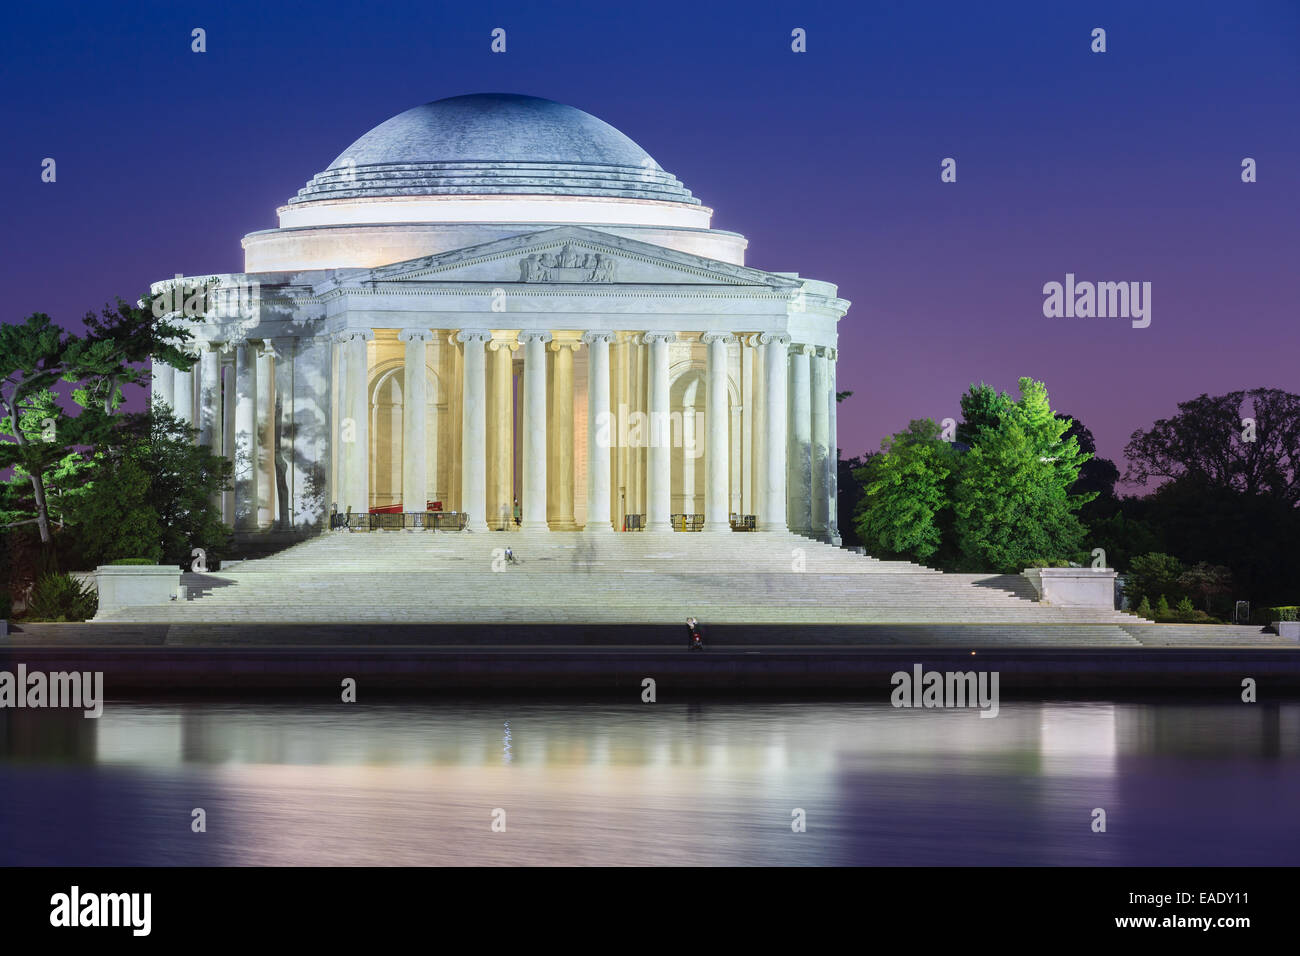 The Thomas Jefferson Memorial is a presidential memorial in Washington, D.C, dedicated to Thomas Jefferson. - Stock Image